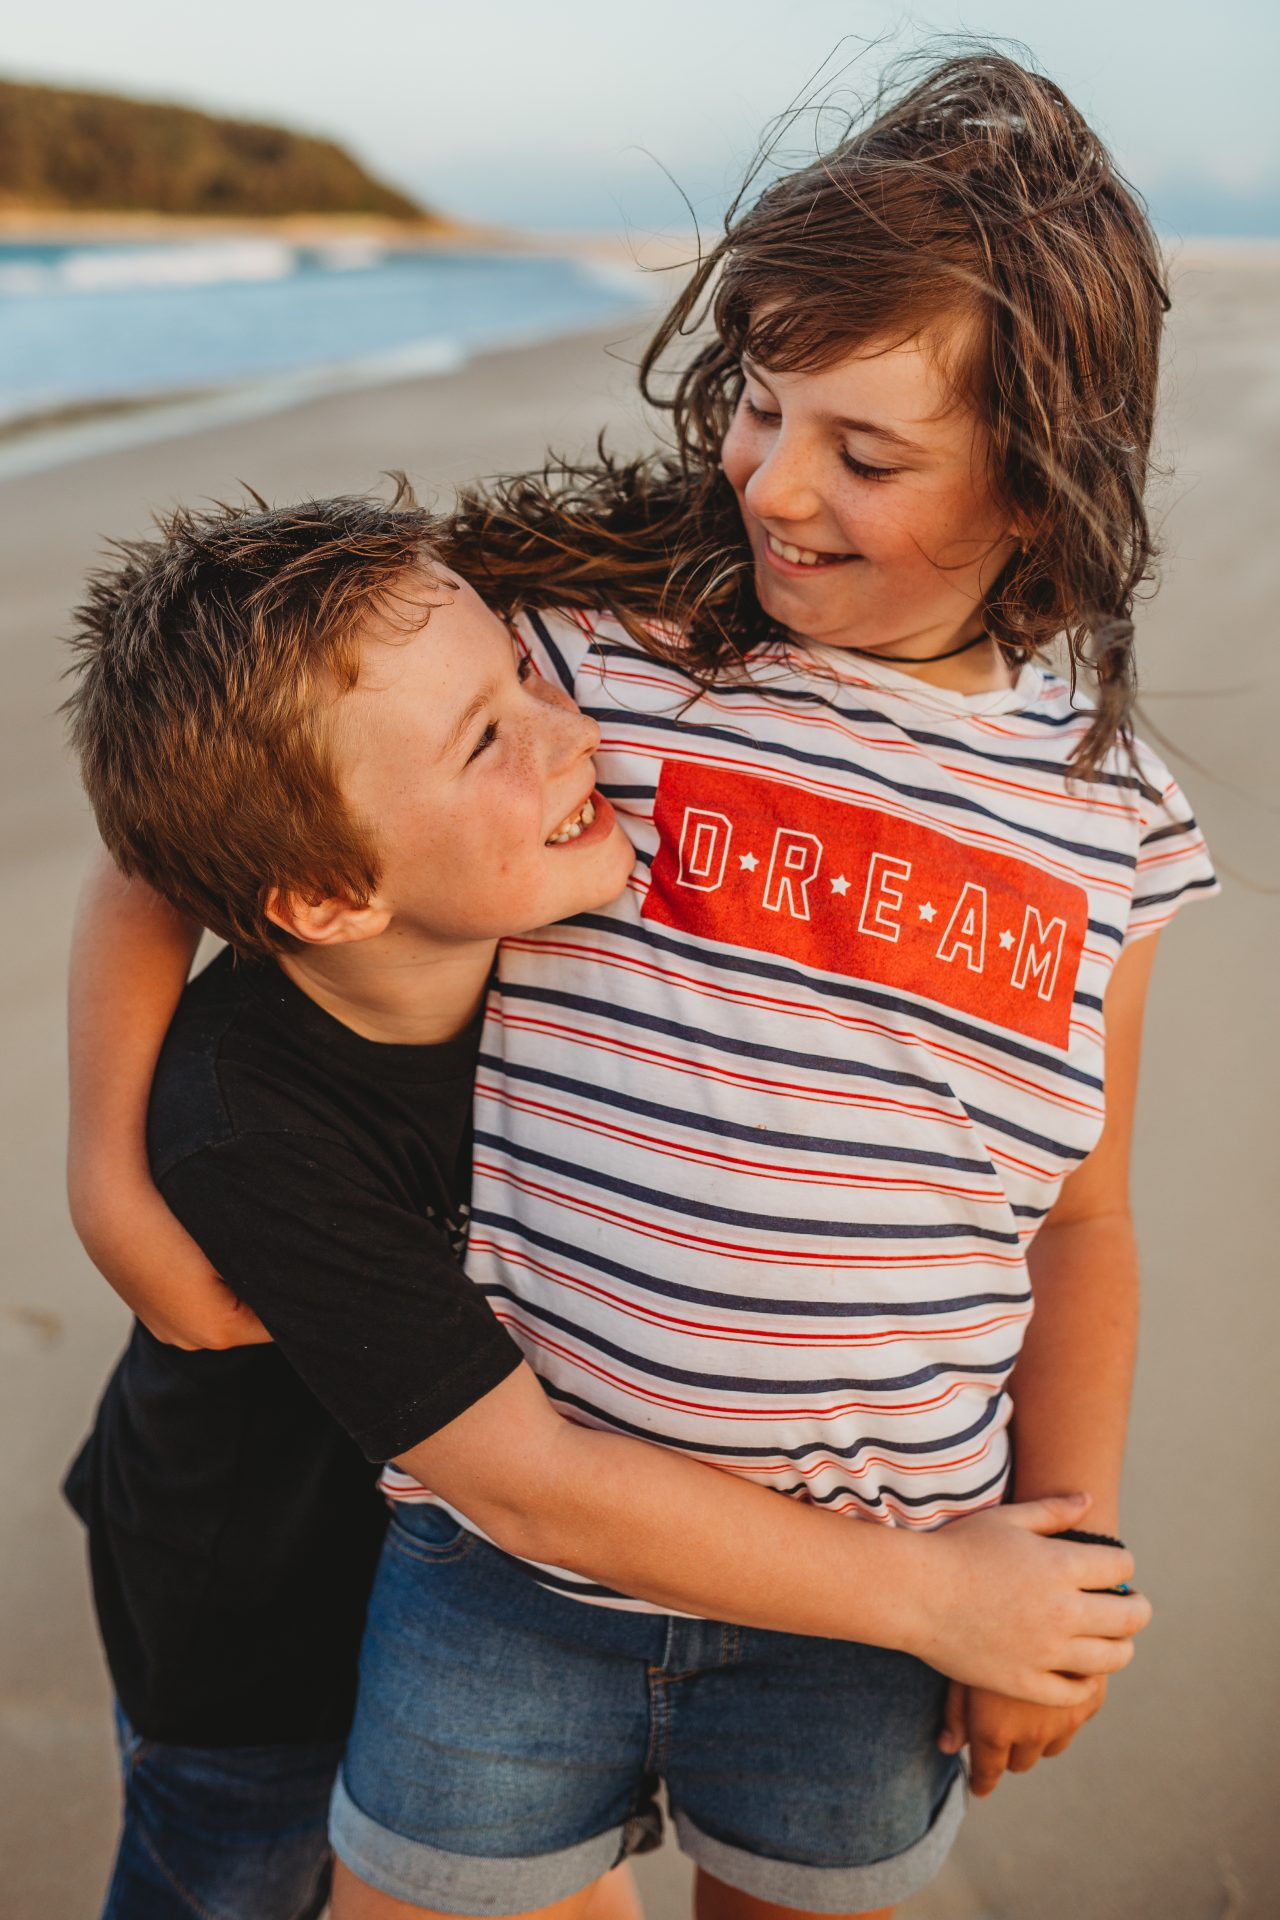 Boy hugging older sister, as they look at each other and smile